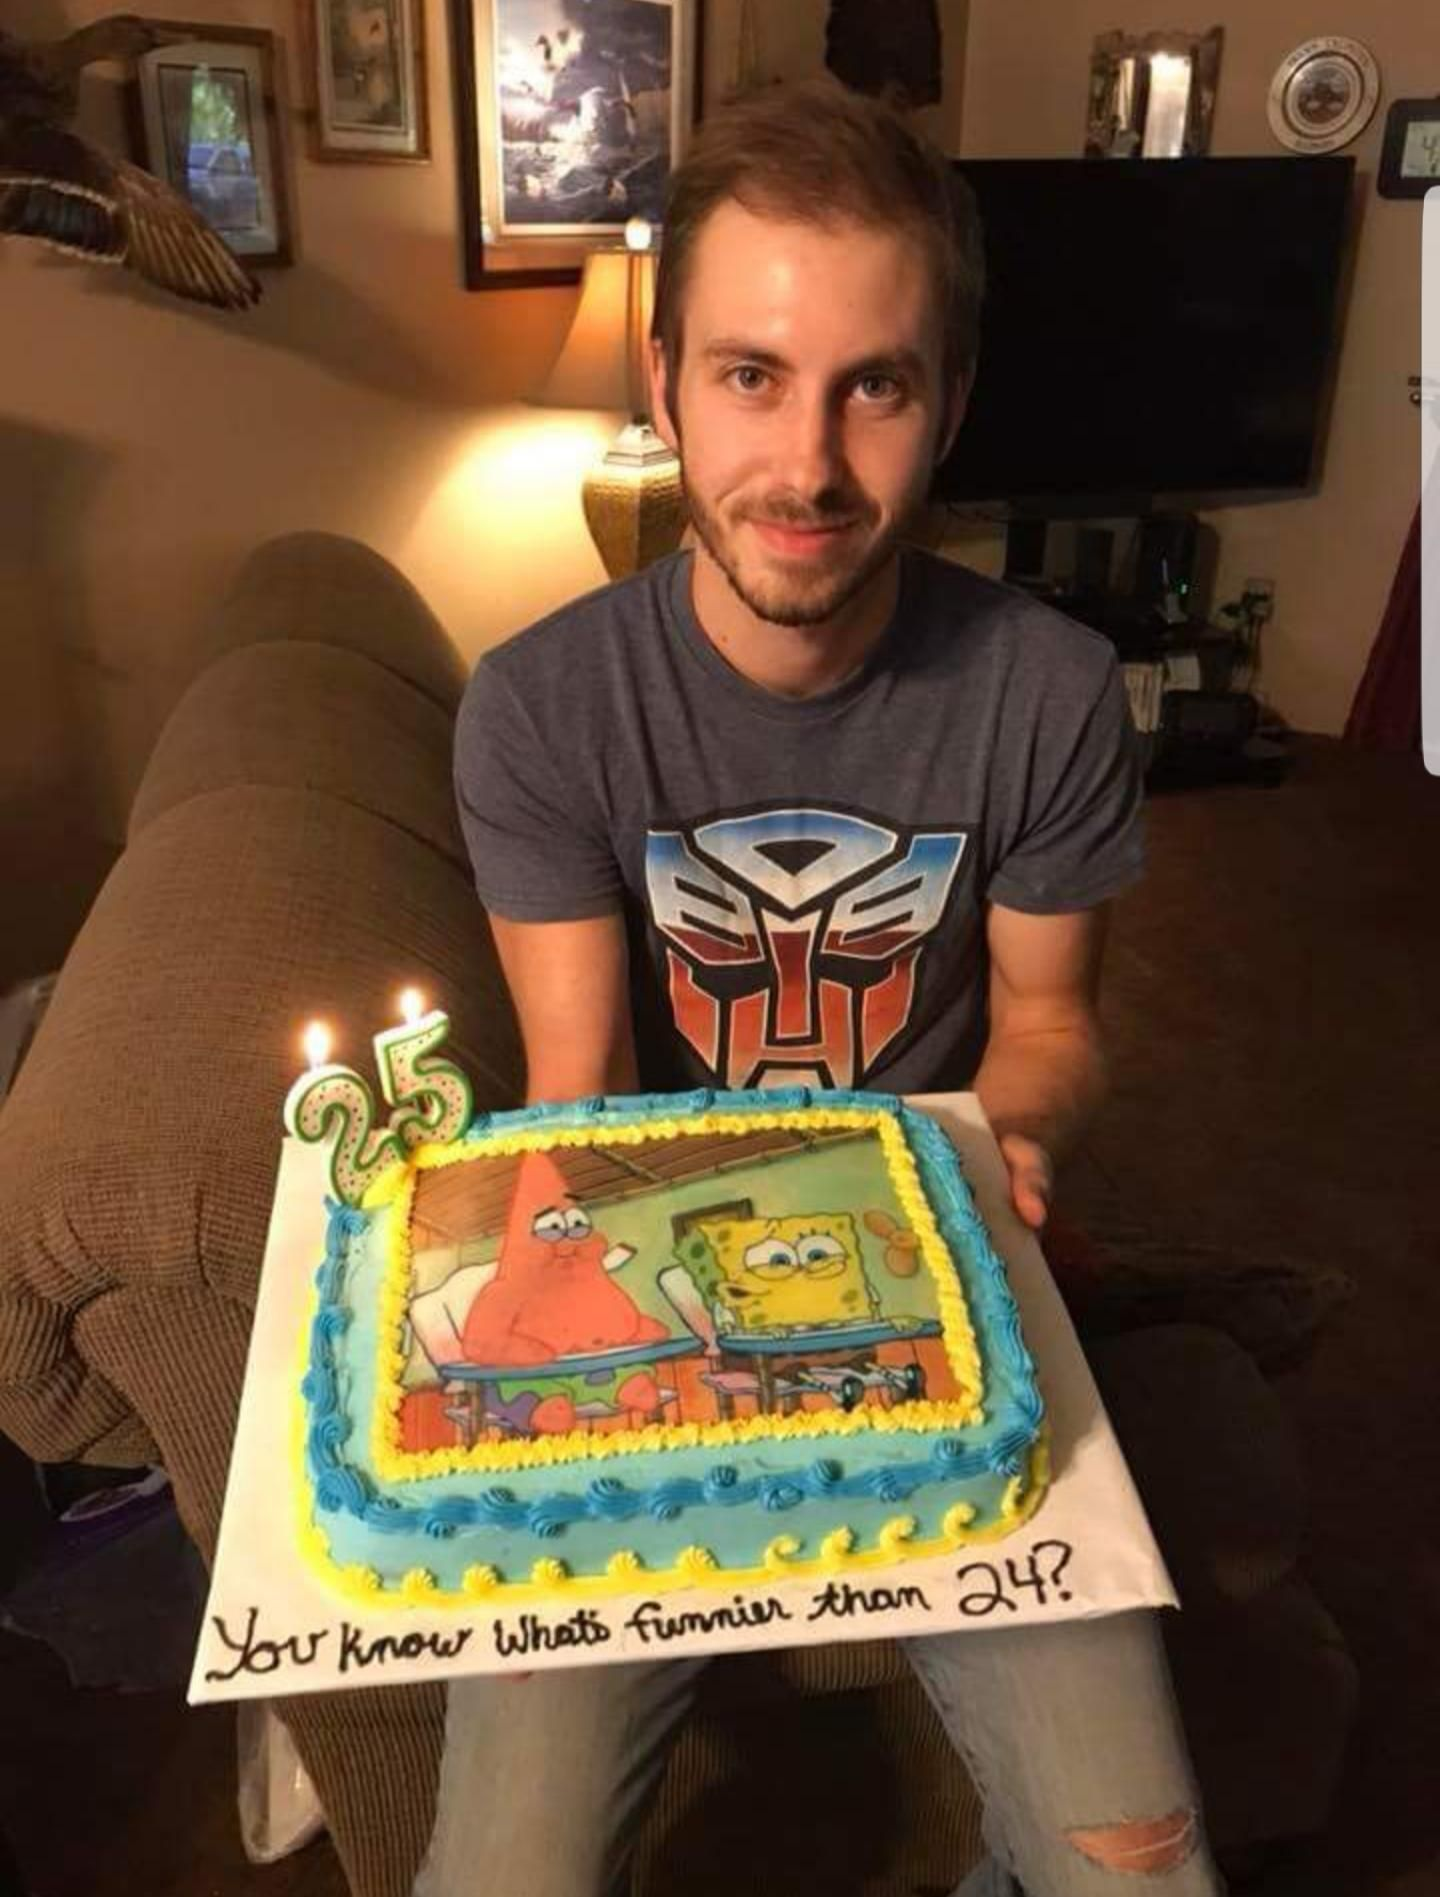 What S Funnier Than 24 With Images Spongebob Birthday Cake